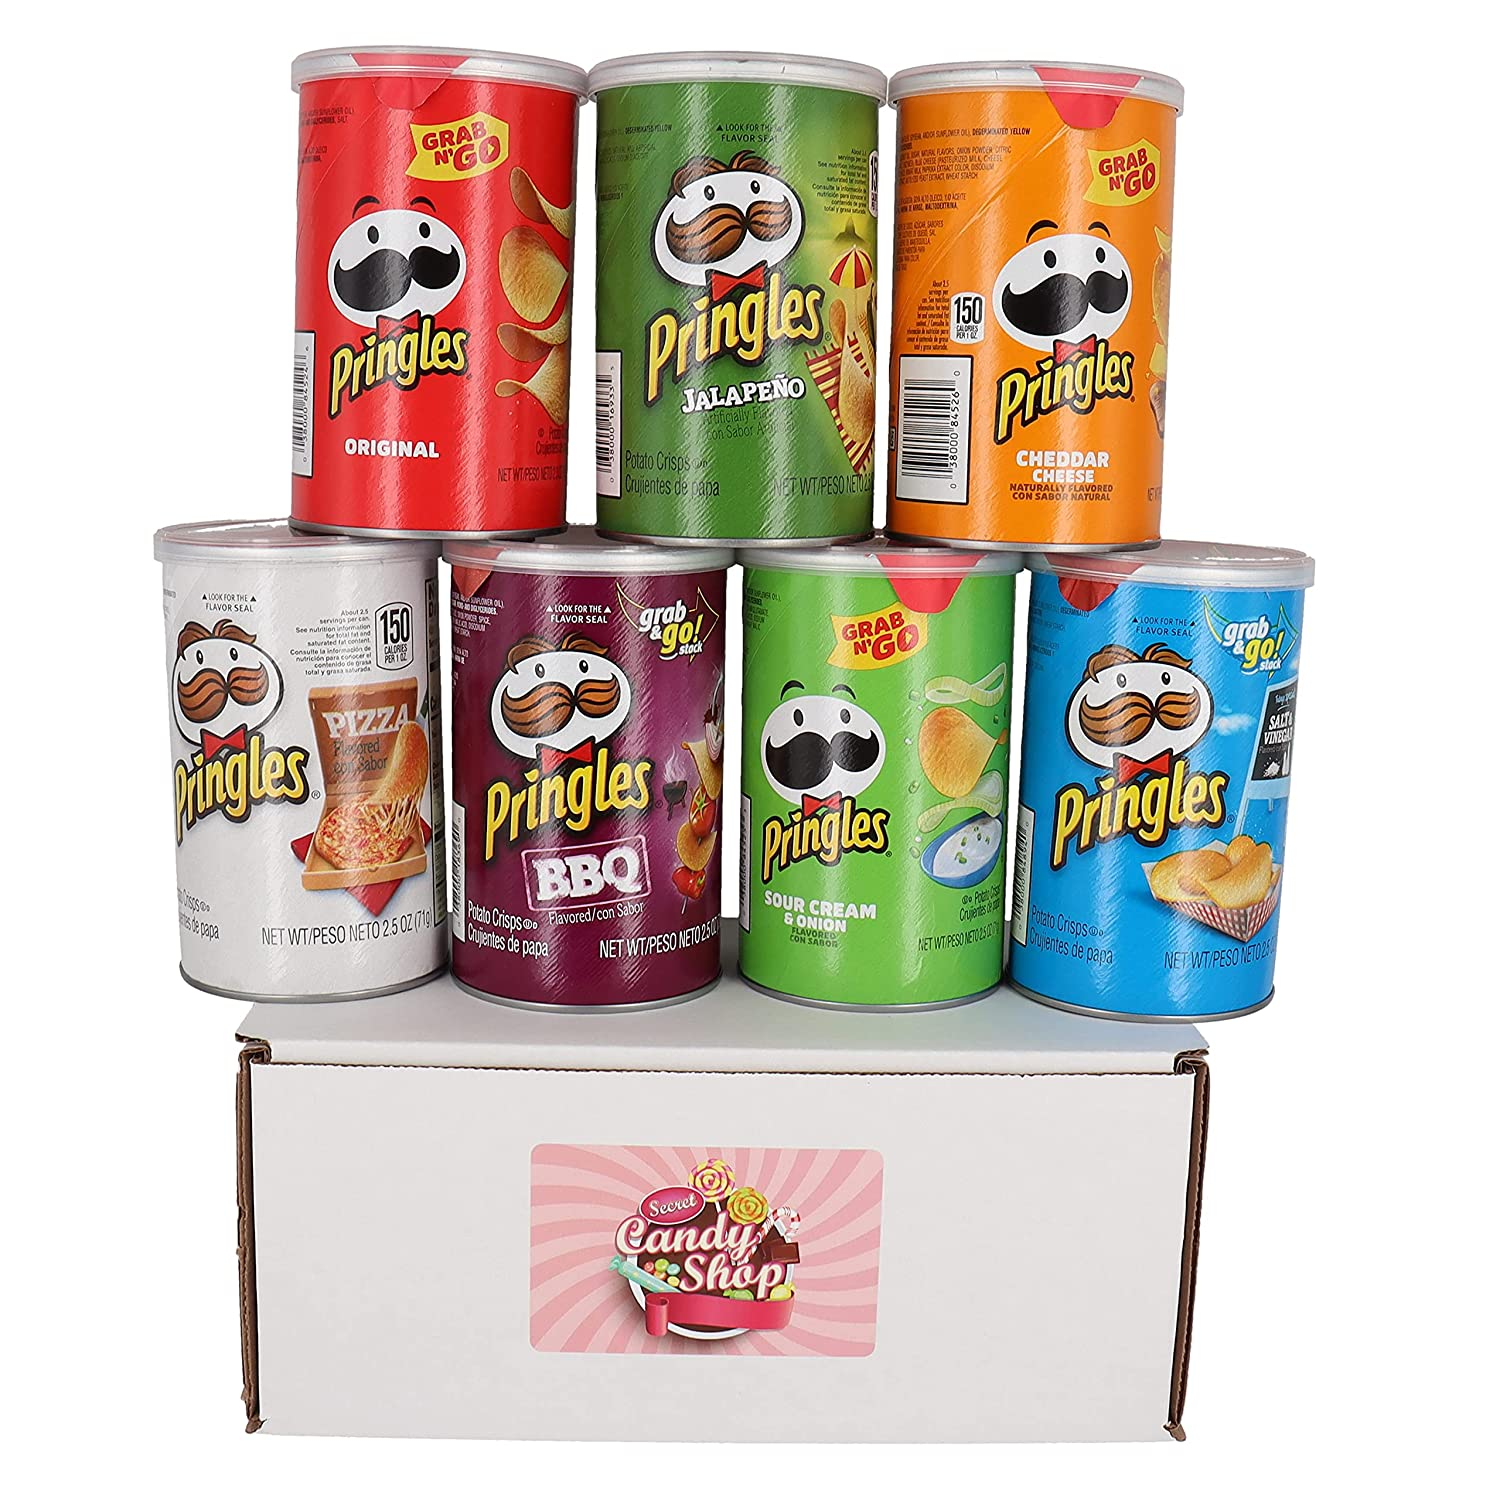 Pringles Potato Chips Variety Pack of 7 Flavors (1 of each, total of 7)